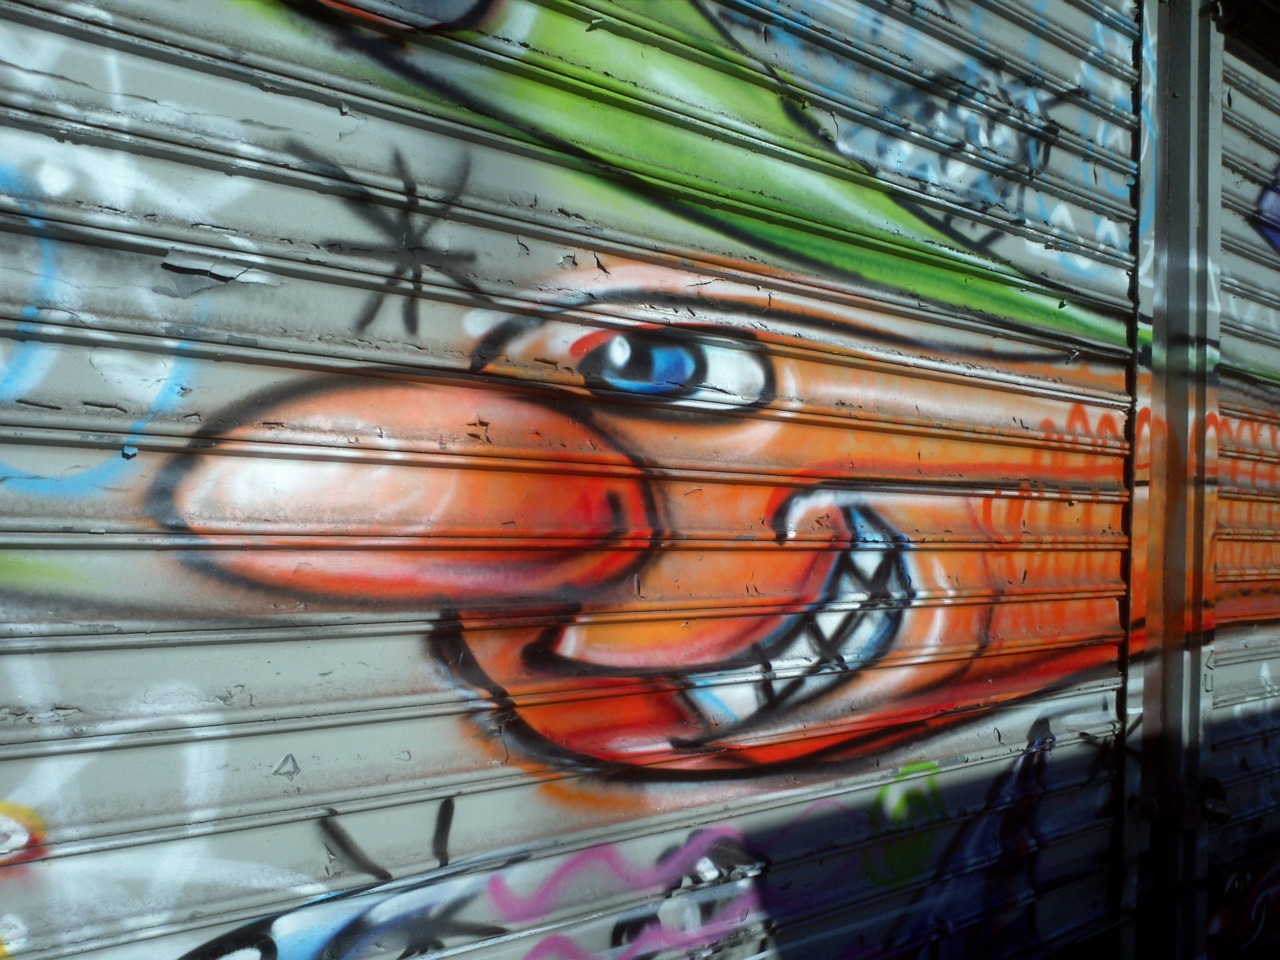 Kenny Scharf on The Bowery.